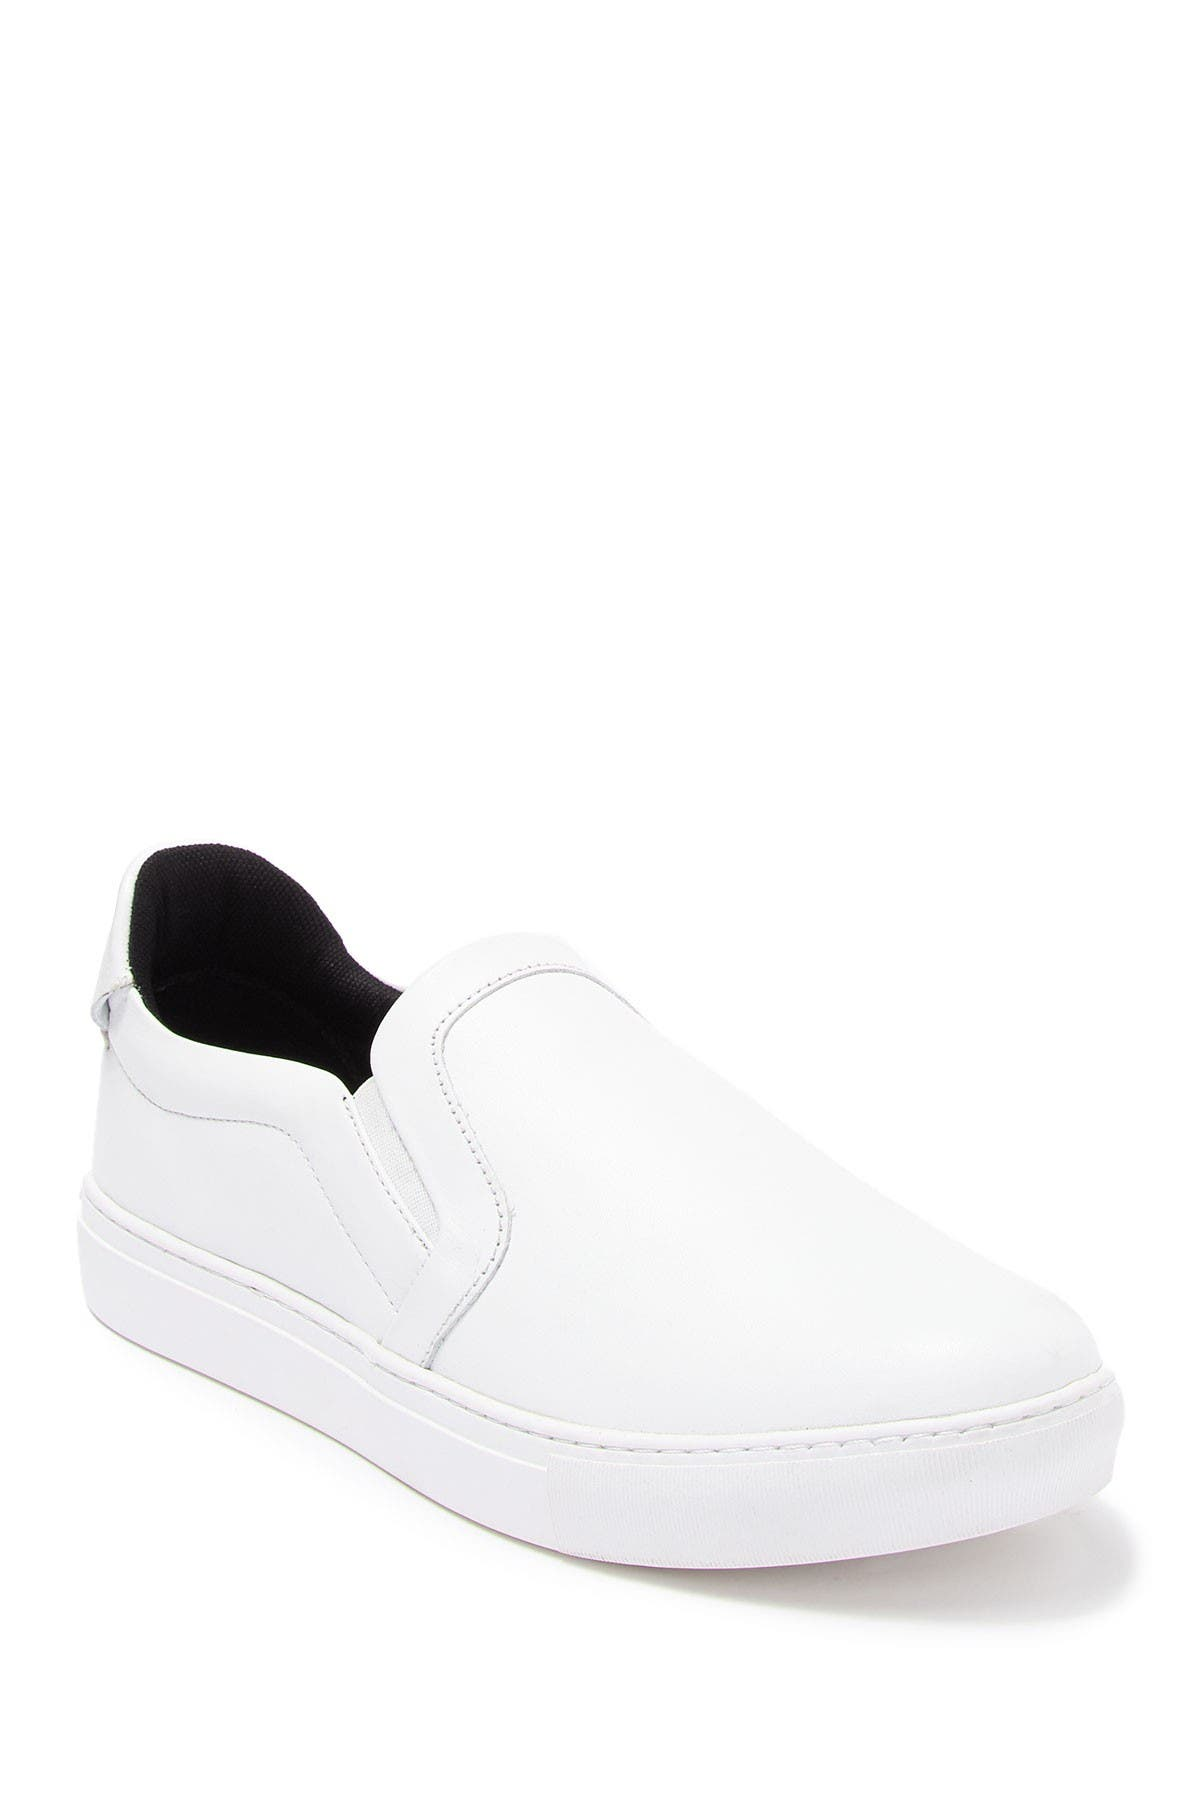 VERSACE COLLECTION | Leather Slip On